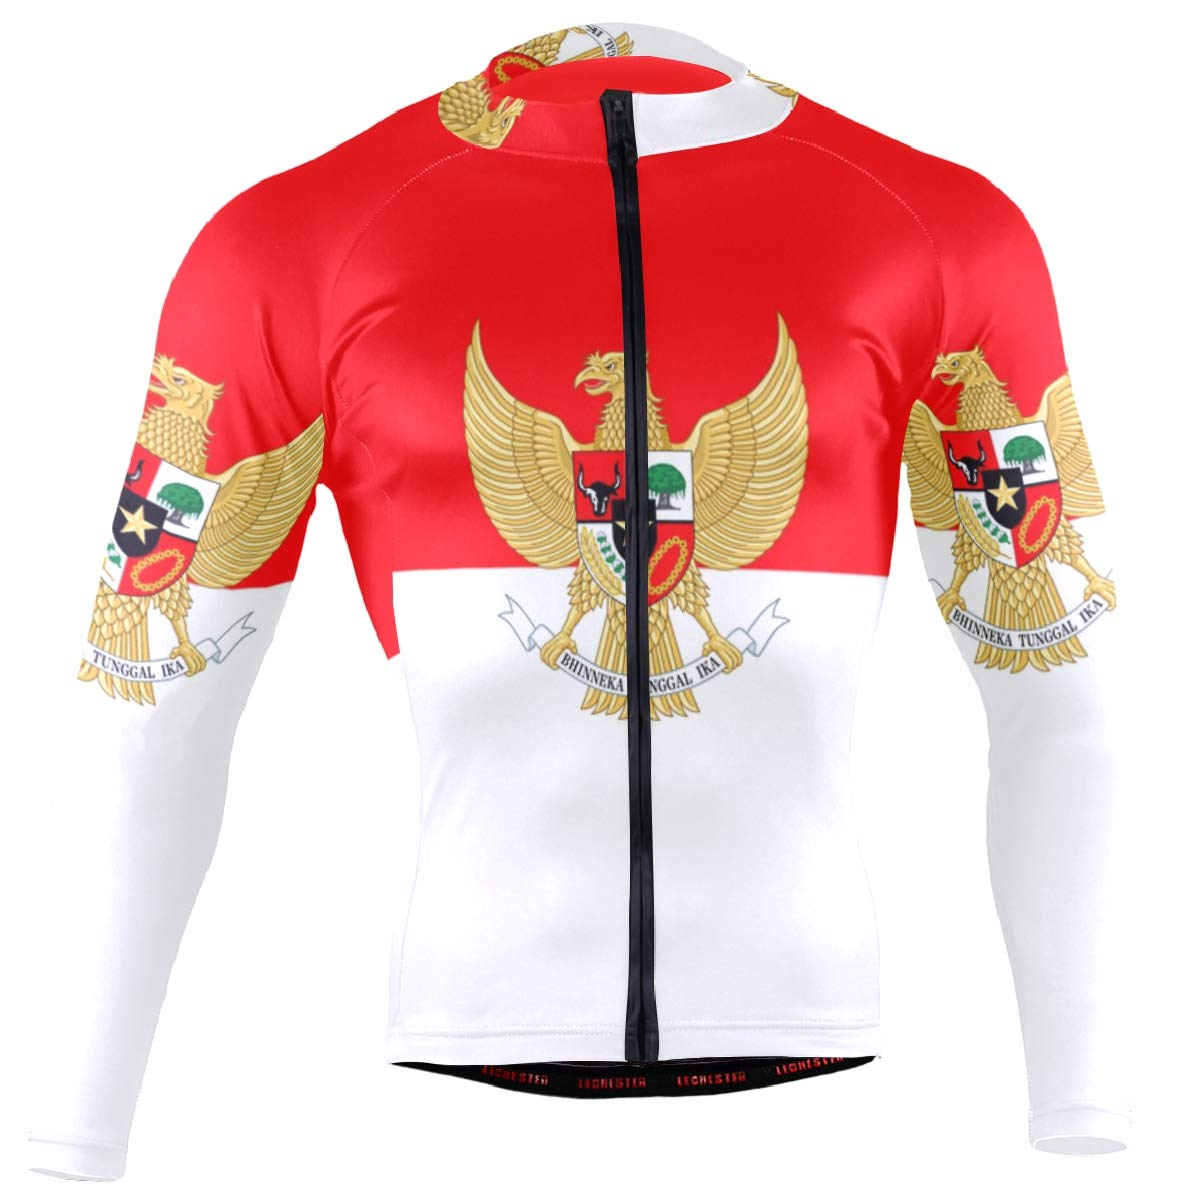 Men's Cycling Jersey Long Sleeve with 3 Rear Pockets Shirt Indonesia Flag National Emblem by CHINEIN